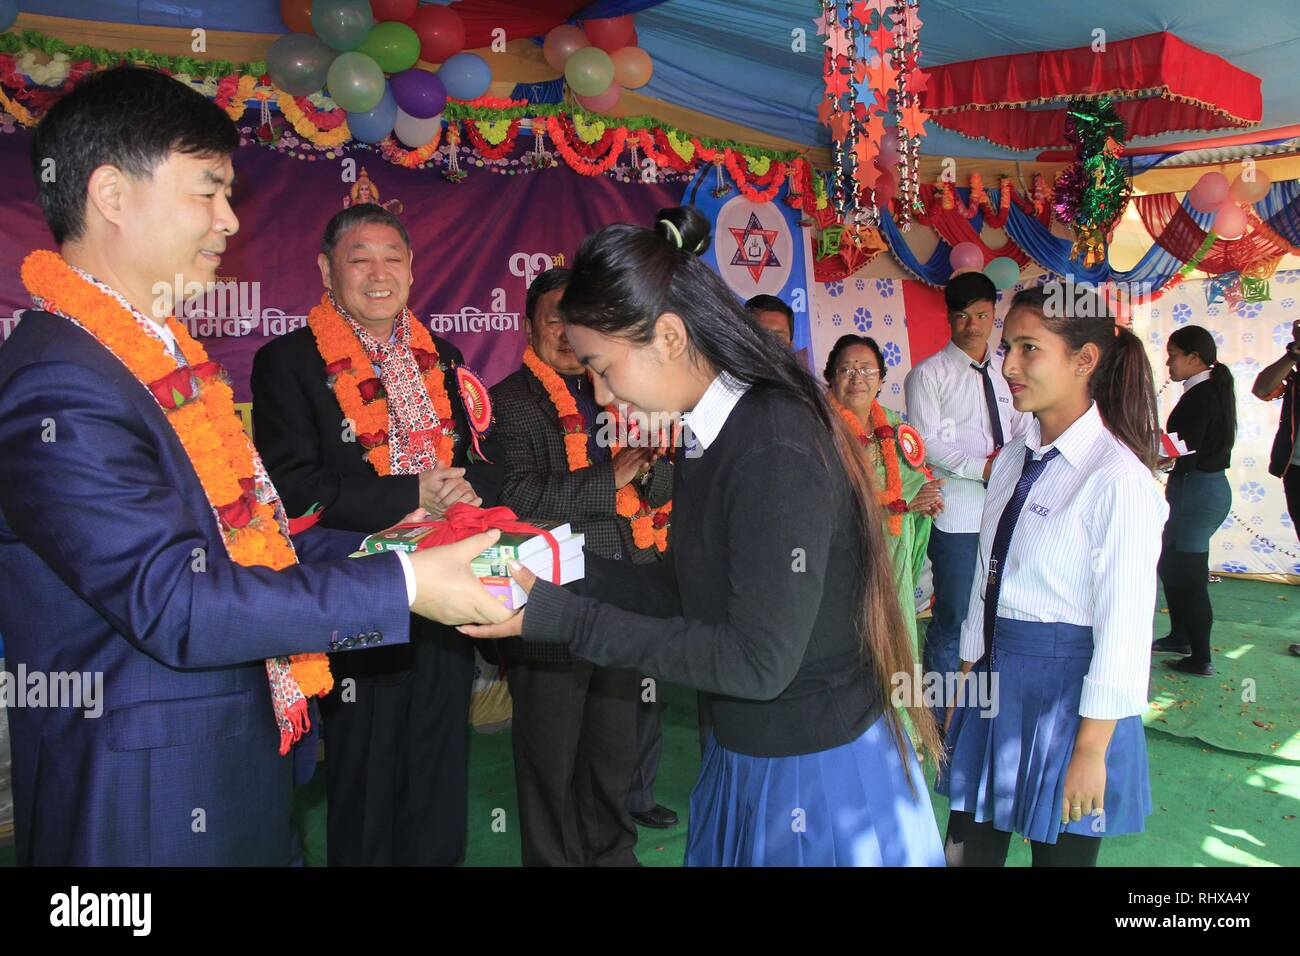 Pokhara, Nepal. 4th Feb, 2019. A representative of China CAMC Engineering Co. Ltd offers books to the students of Kalika Secondary School and Public College in Pokhara, Nepal, Feb. 4, 2019. The Chinese company made a donation of Rs one million (about 9,000 U.S. dollars) to the school, for students from poor families. China CAMC Engineering Co. Ltd is the contractor of the Pokhara International Airport, which is being built in the tourism hub Pokhara. Credit: Krishna Mani Baral/Xinhua/Alamy Live News - Stock Image